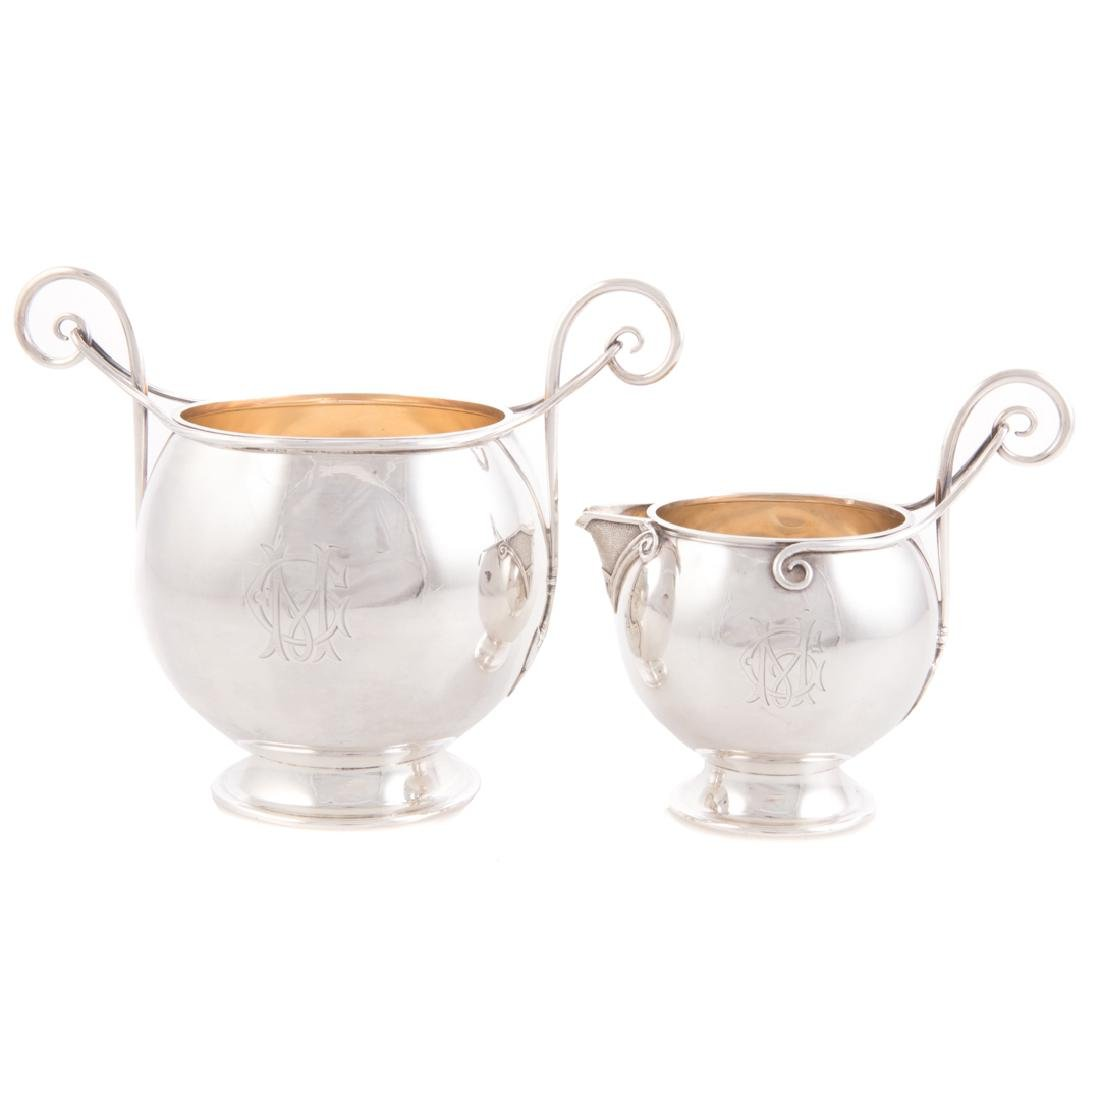 Gorham sterling sugar bowl & cream pitcher